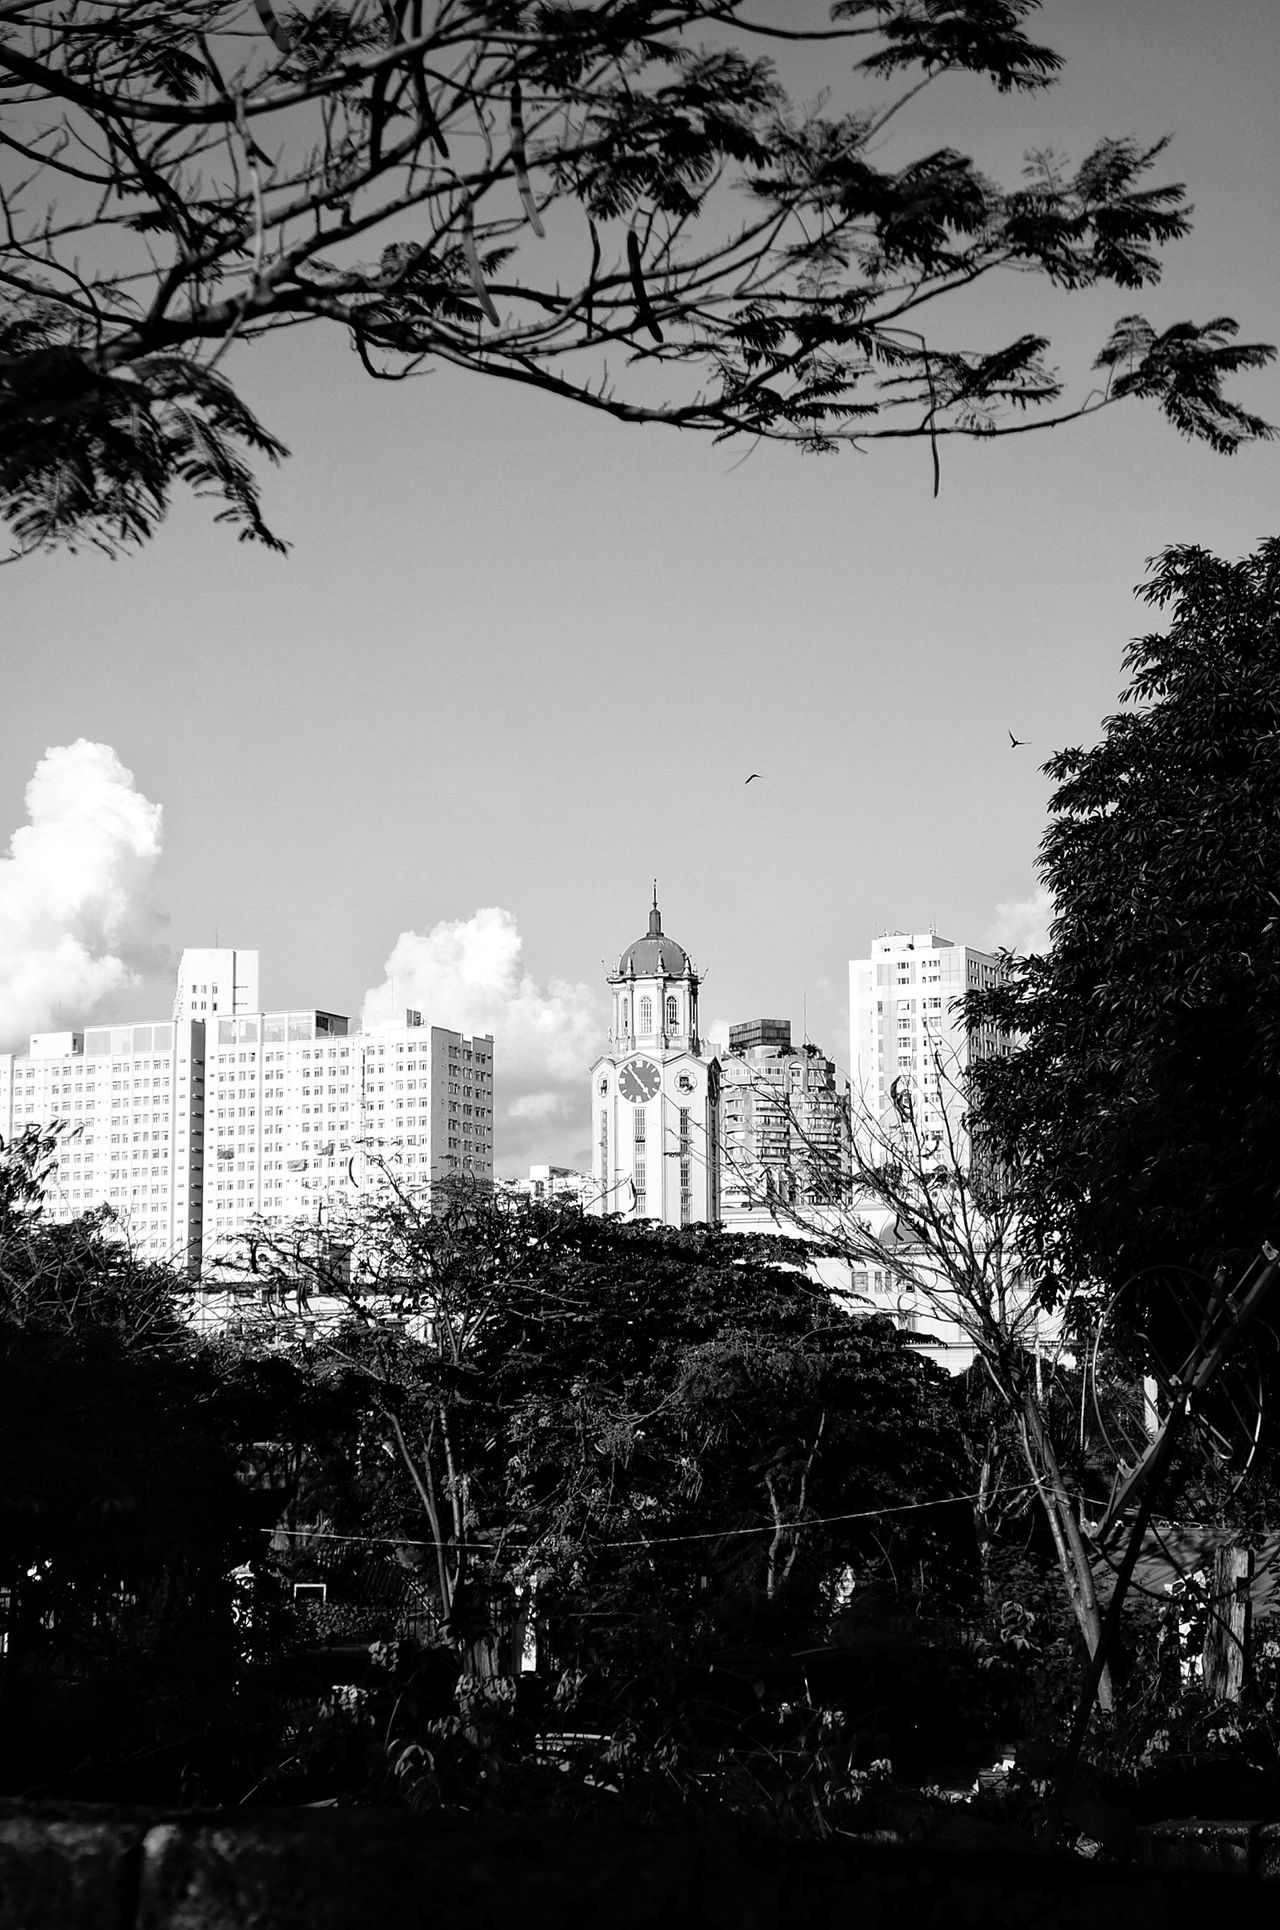 View of the building of city hall of Manila through the Intramuros with a big clock attached on it. Tree City Architecture Cityscape Outdoors No People Urban Skyline Modern Cloud - Sky Silouette & Sky Historical Monuments Black And White Photography Blackandwhite Photography Beauty In Nature Historical Place Silhouette_collection Black And White Collection  Landscape_photography Black And White Collection  Intramuroswalls Intramuros,manila Black And White Collection  Silhouette Photography Black And White Collection  Landscape